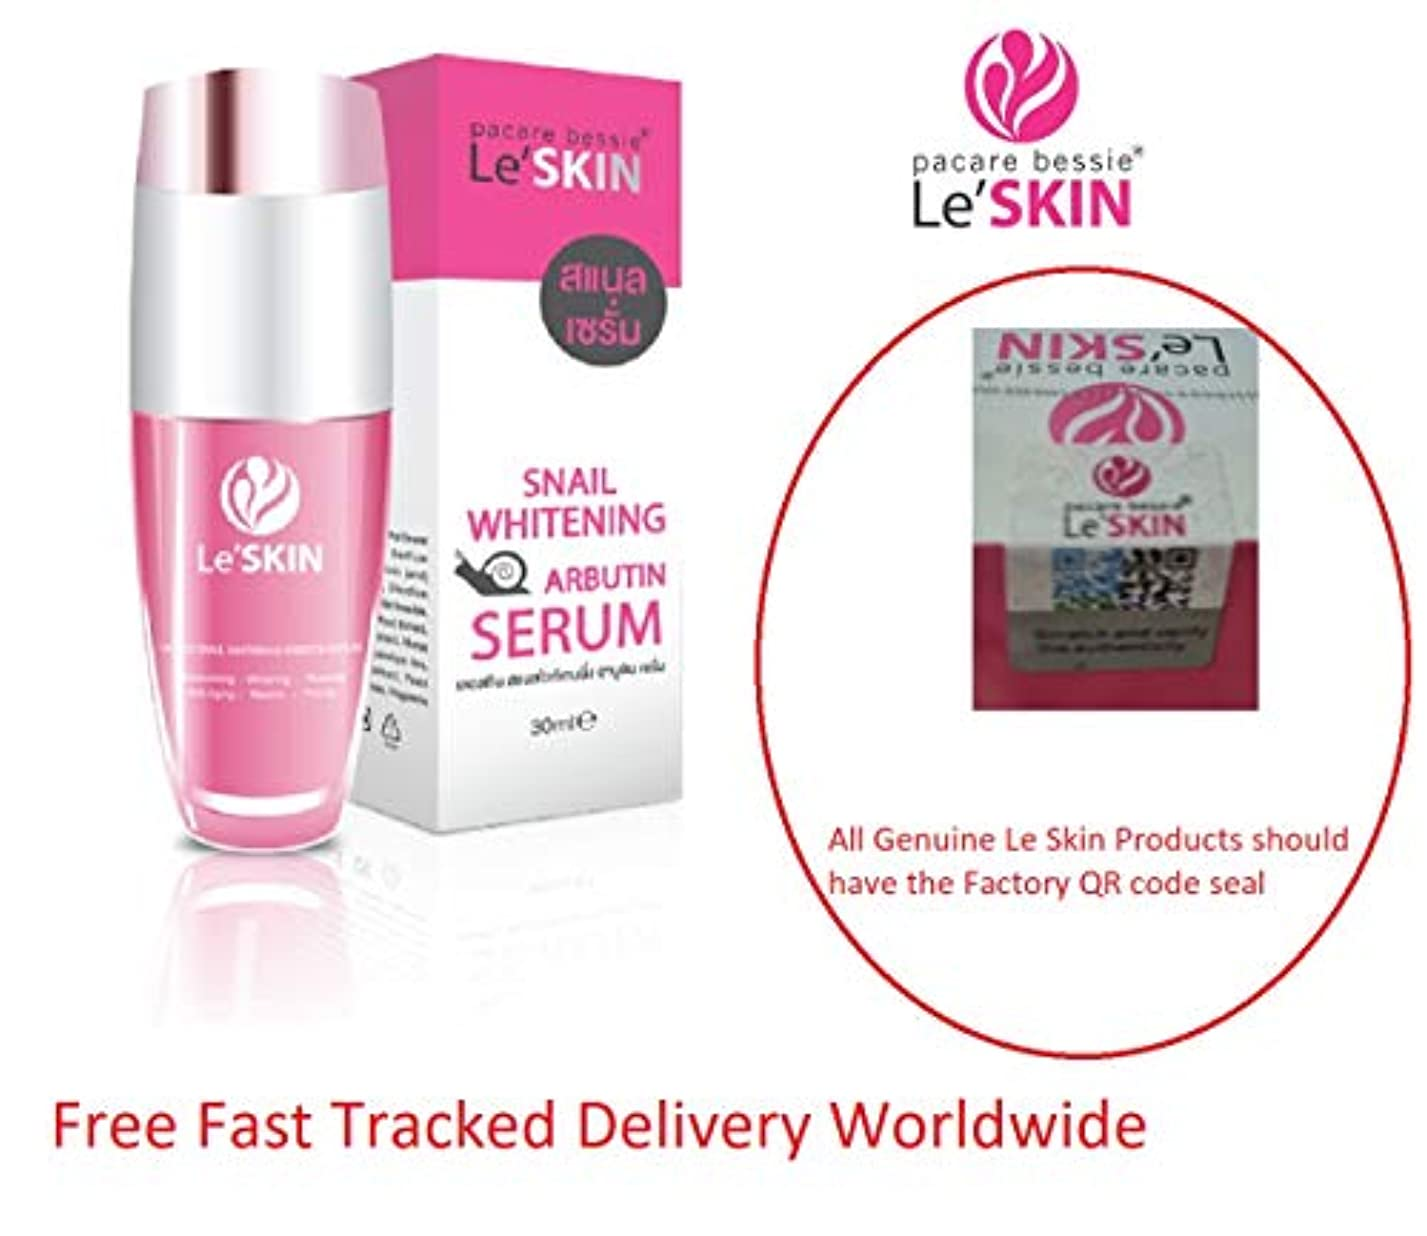 Le' SKIN SNAIL WHITENING ARBUTIN SERUM 30ml Reduce Black Spots Radiant Skin ** FREE TRACKED WORLWIDE DELIVERY...